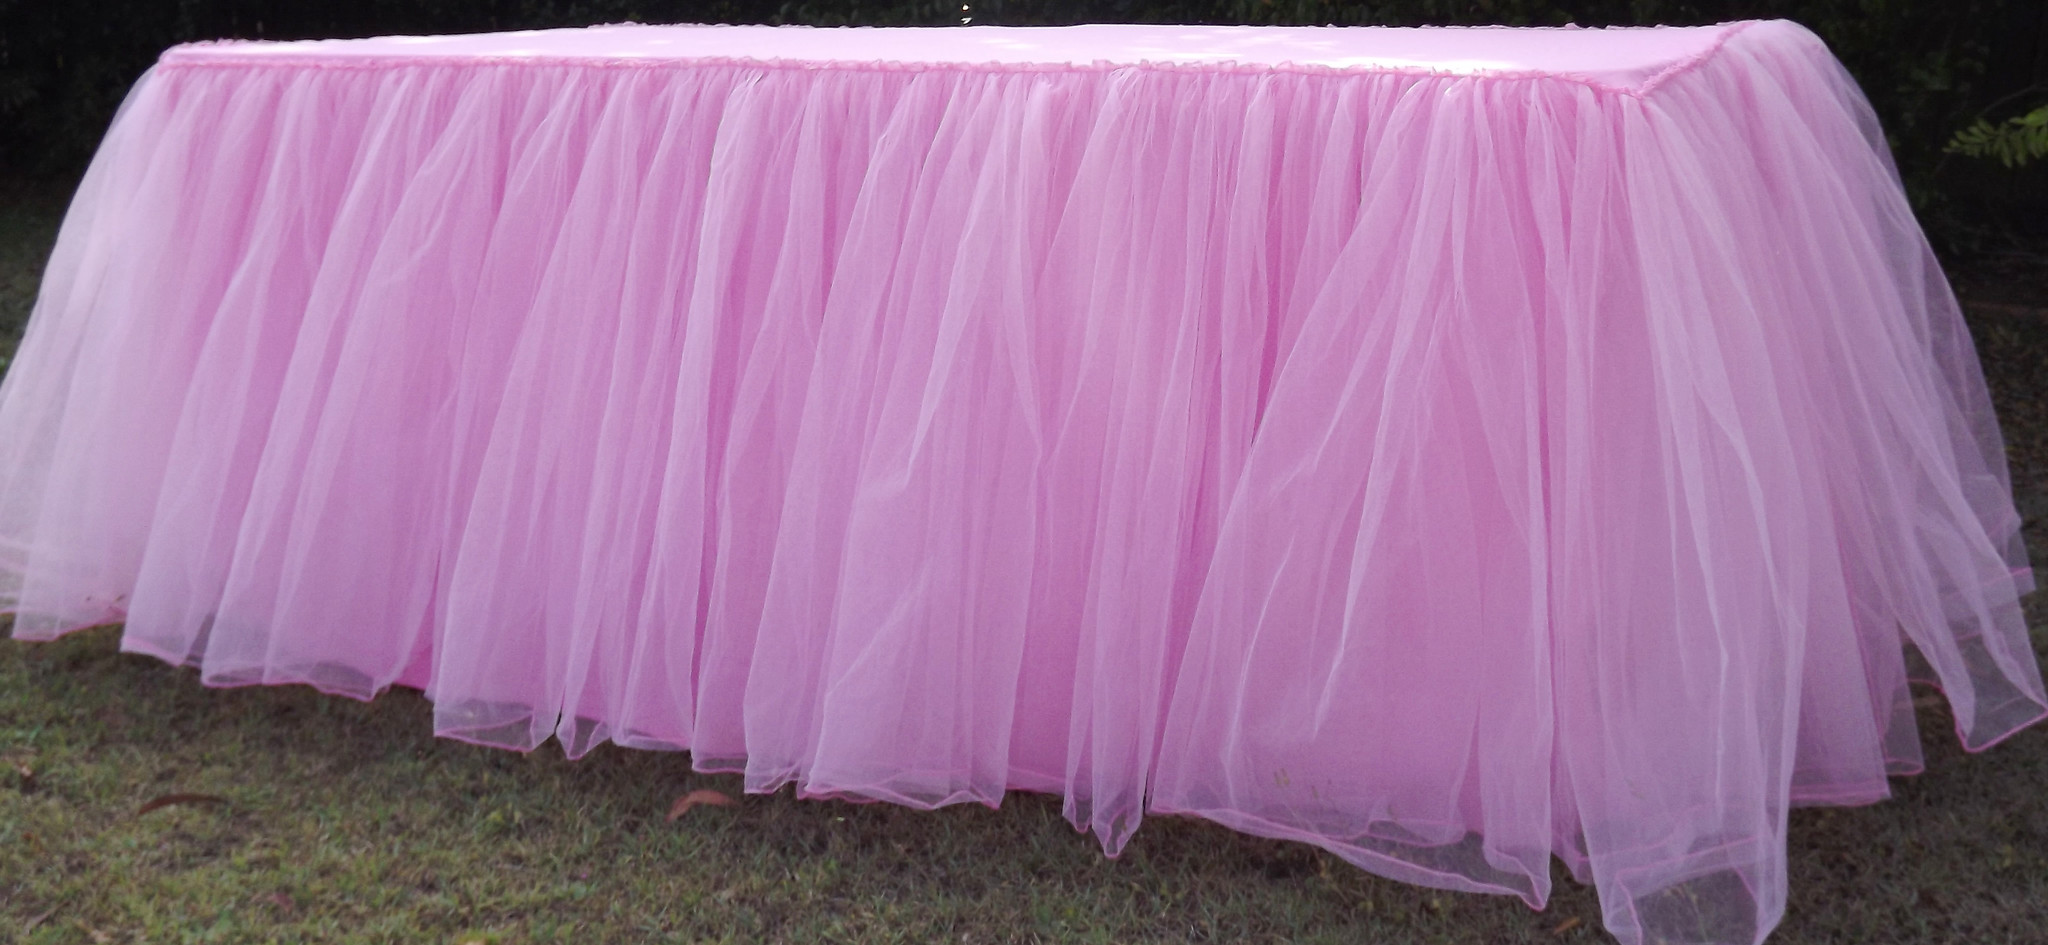 Tulle tablecloth - Saffy and May